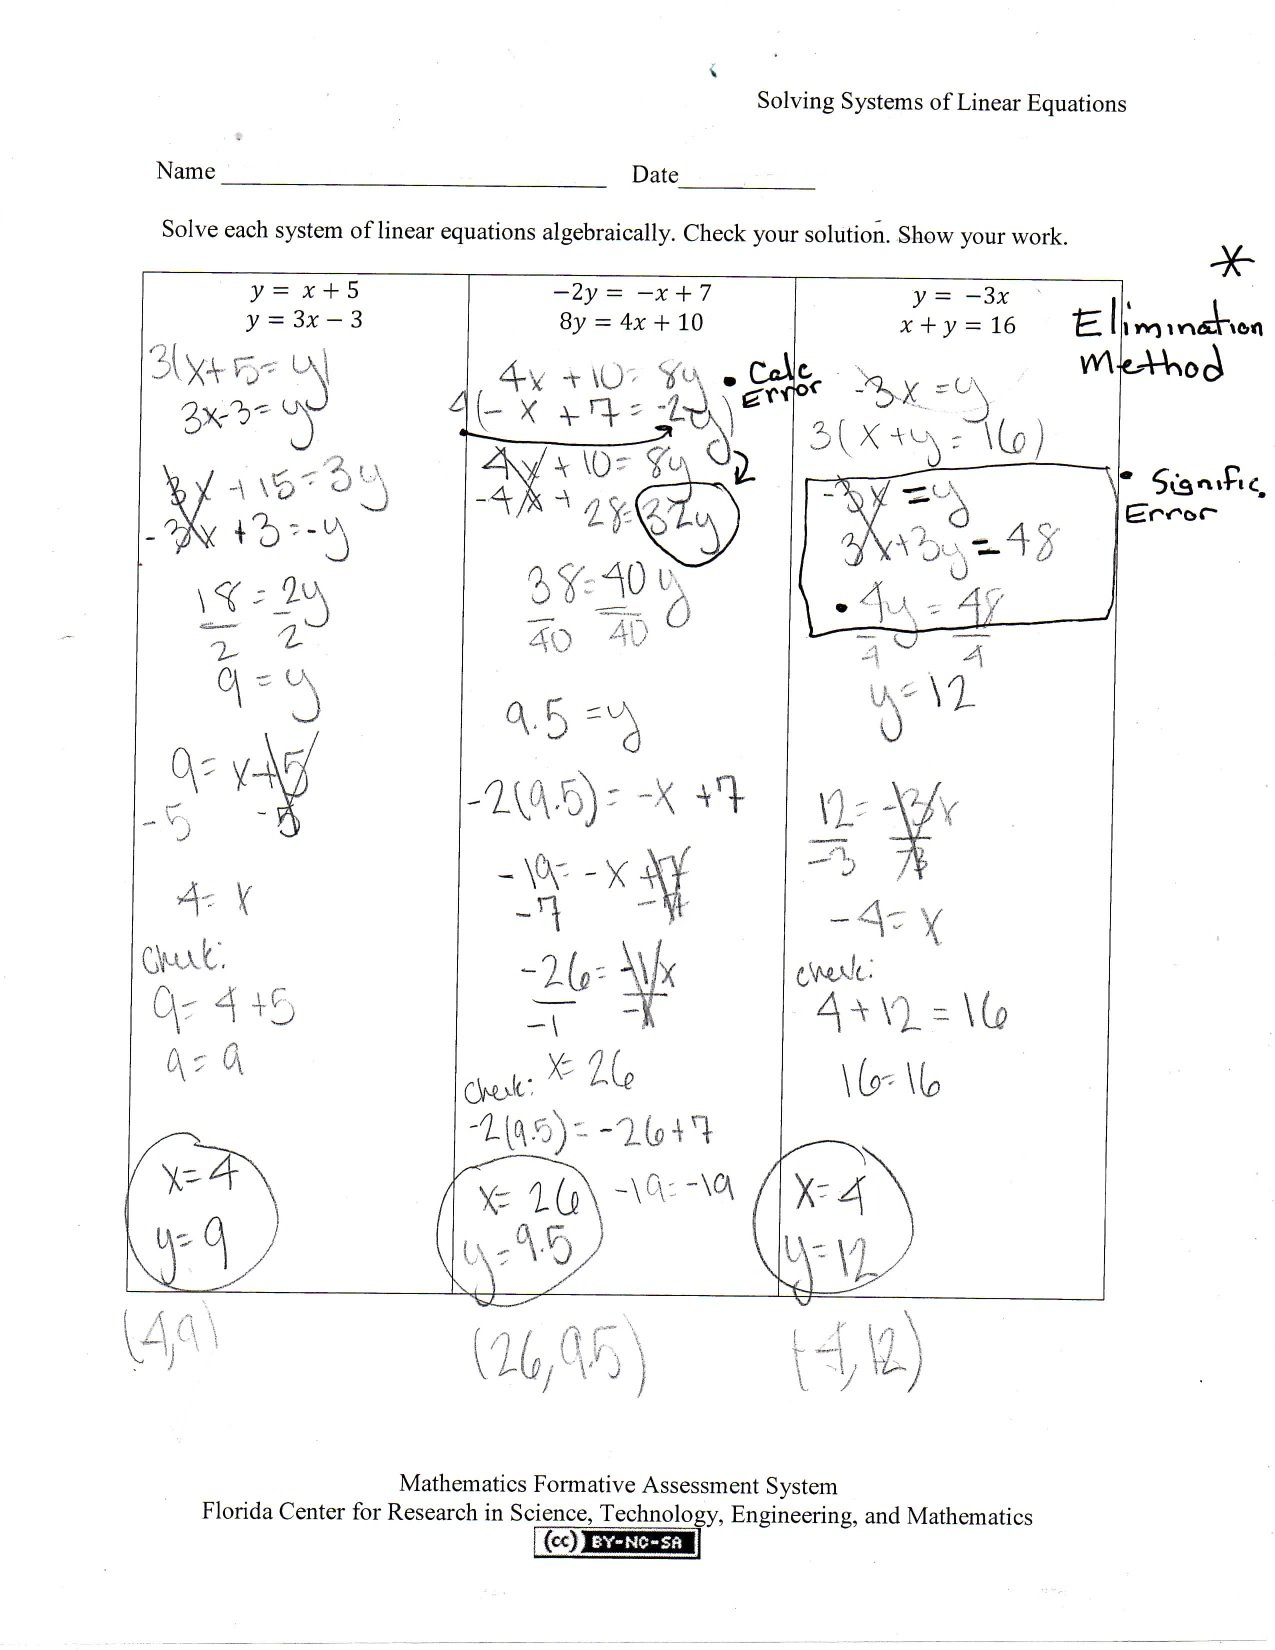 Solving Systems Of Linear Equations Students Are Asked To Solve As Well As Worksheet 3 Systems Of Equations Substitution And Elimination Answers